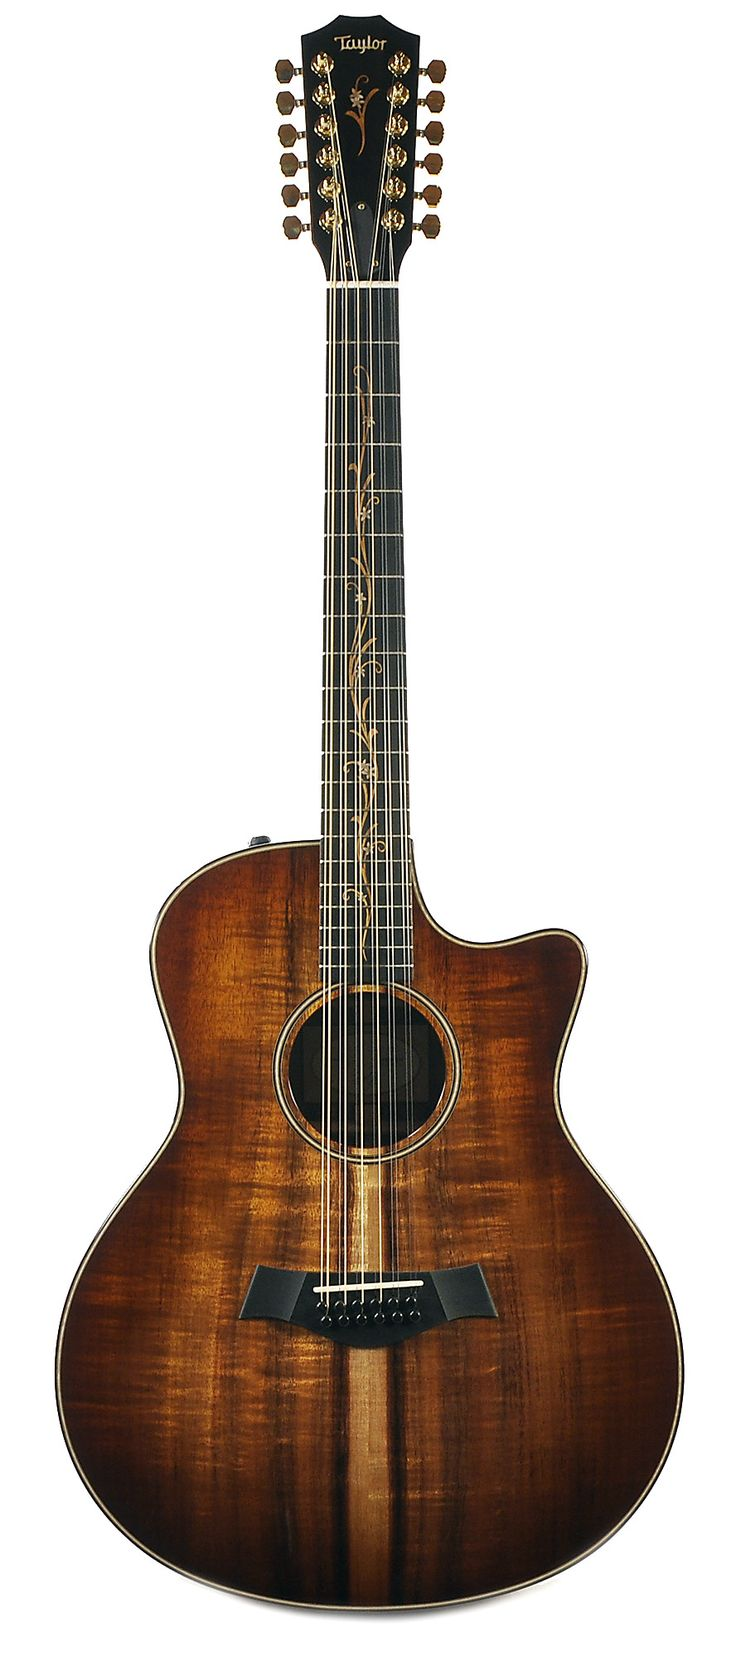 TAYLOR K66ce 12-String Grand Symphony Hawaiian Koa | Chicago Music Exchange  If I ever decided to get a 12 string, this would be what I choose to get.